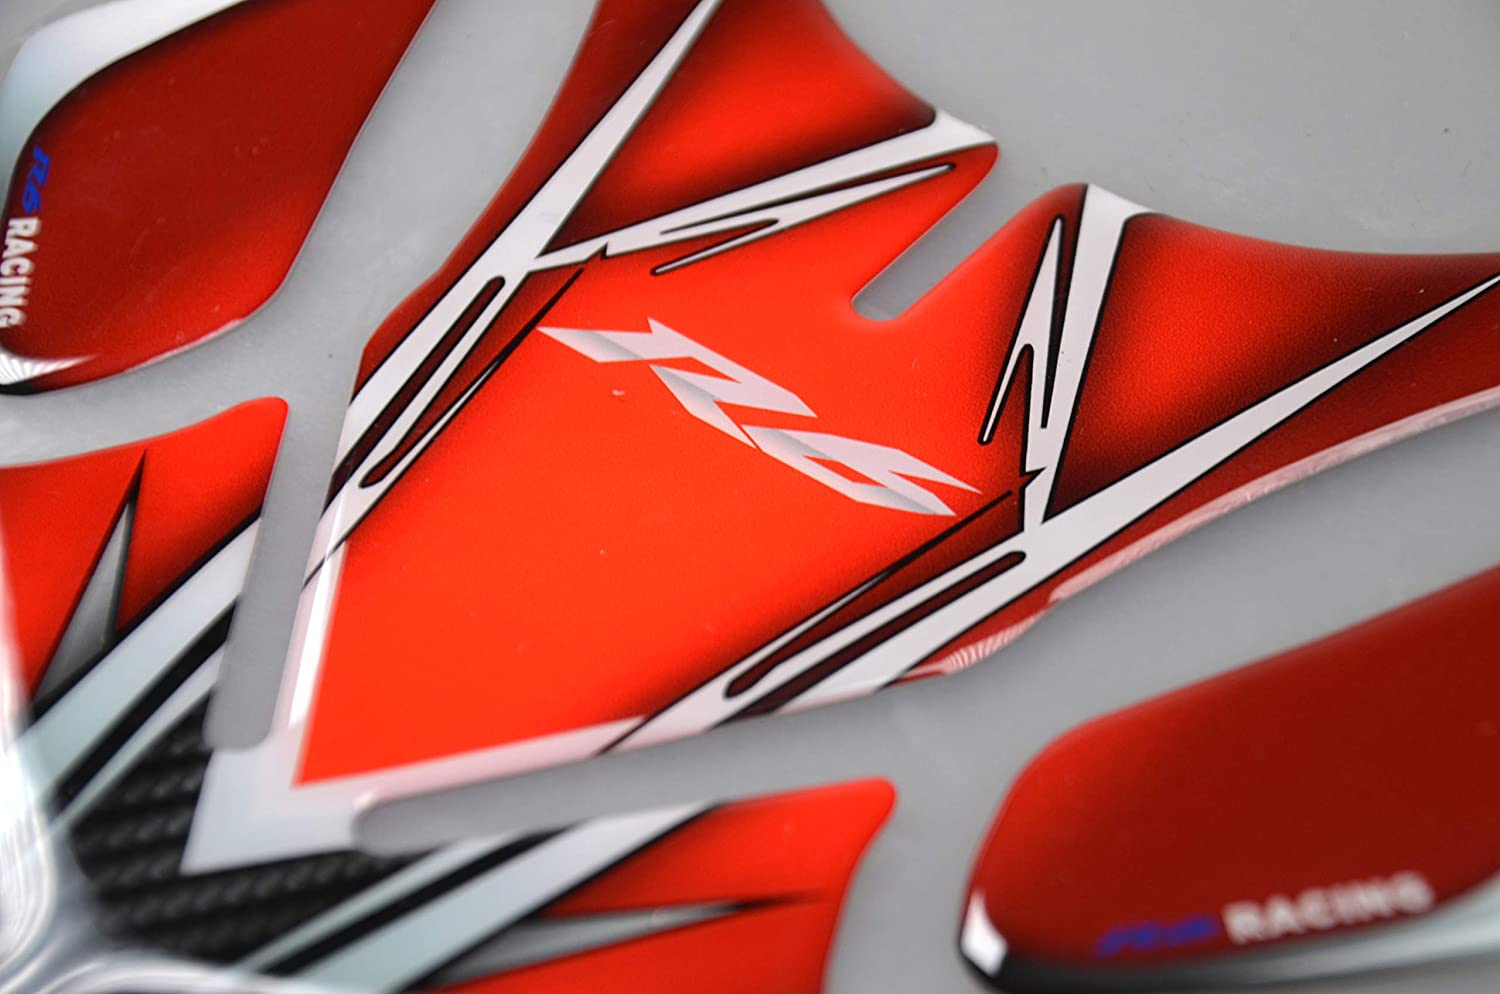 Red 5559093421 Motorcycle Tank Gas Protector Tank Pad Sticker Fit For YZF R6 1999 2000 2001 2002 2003 2004